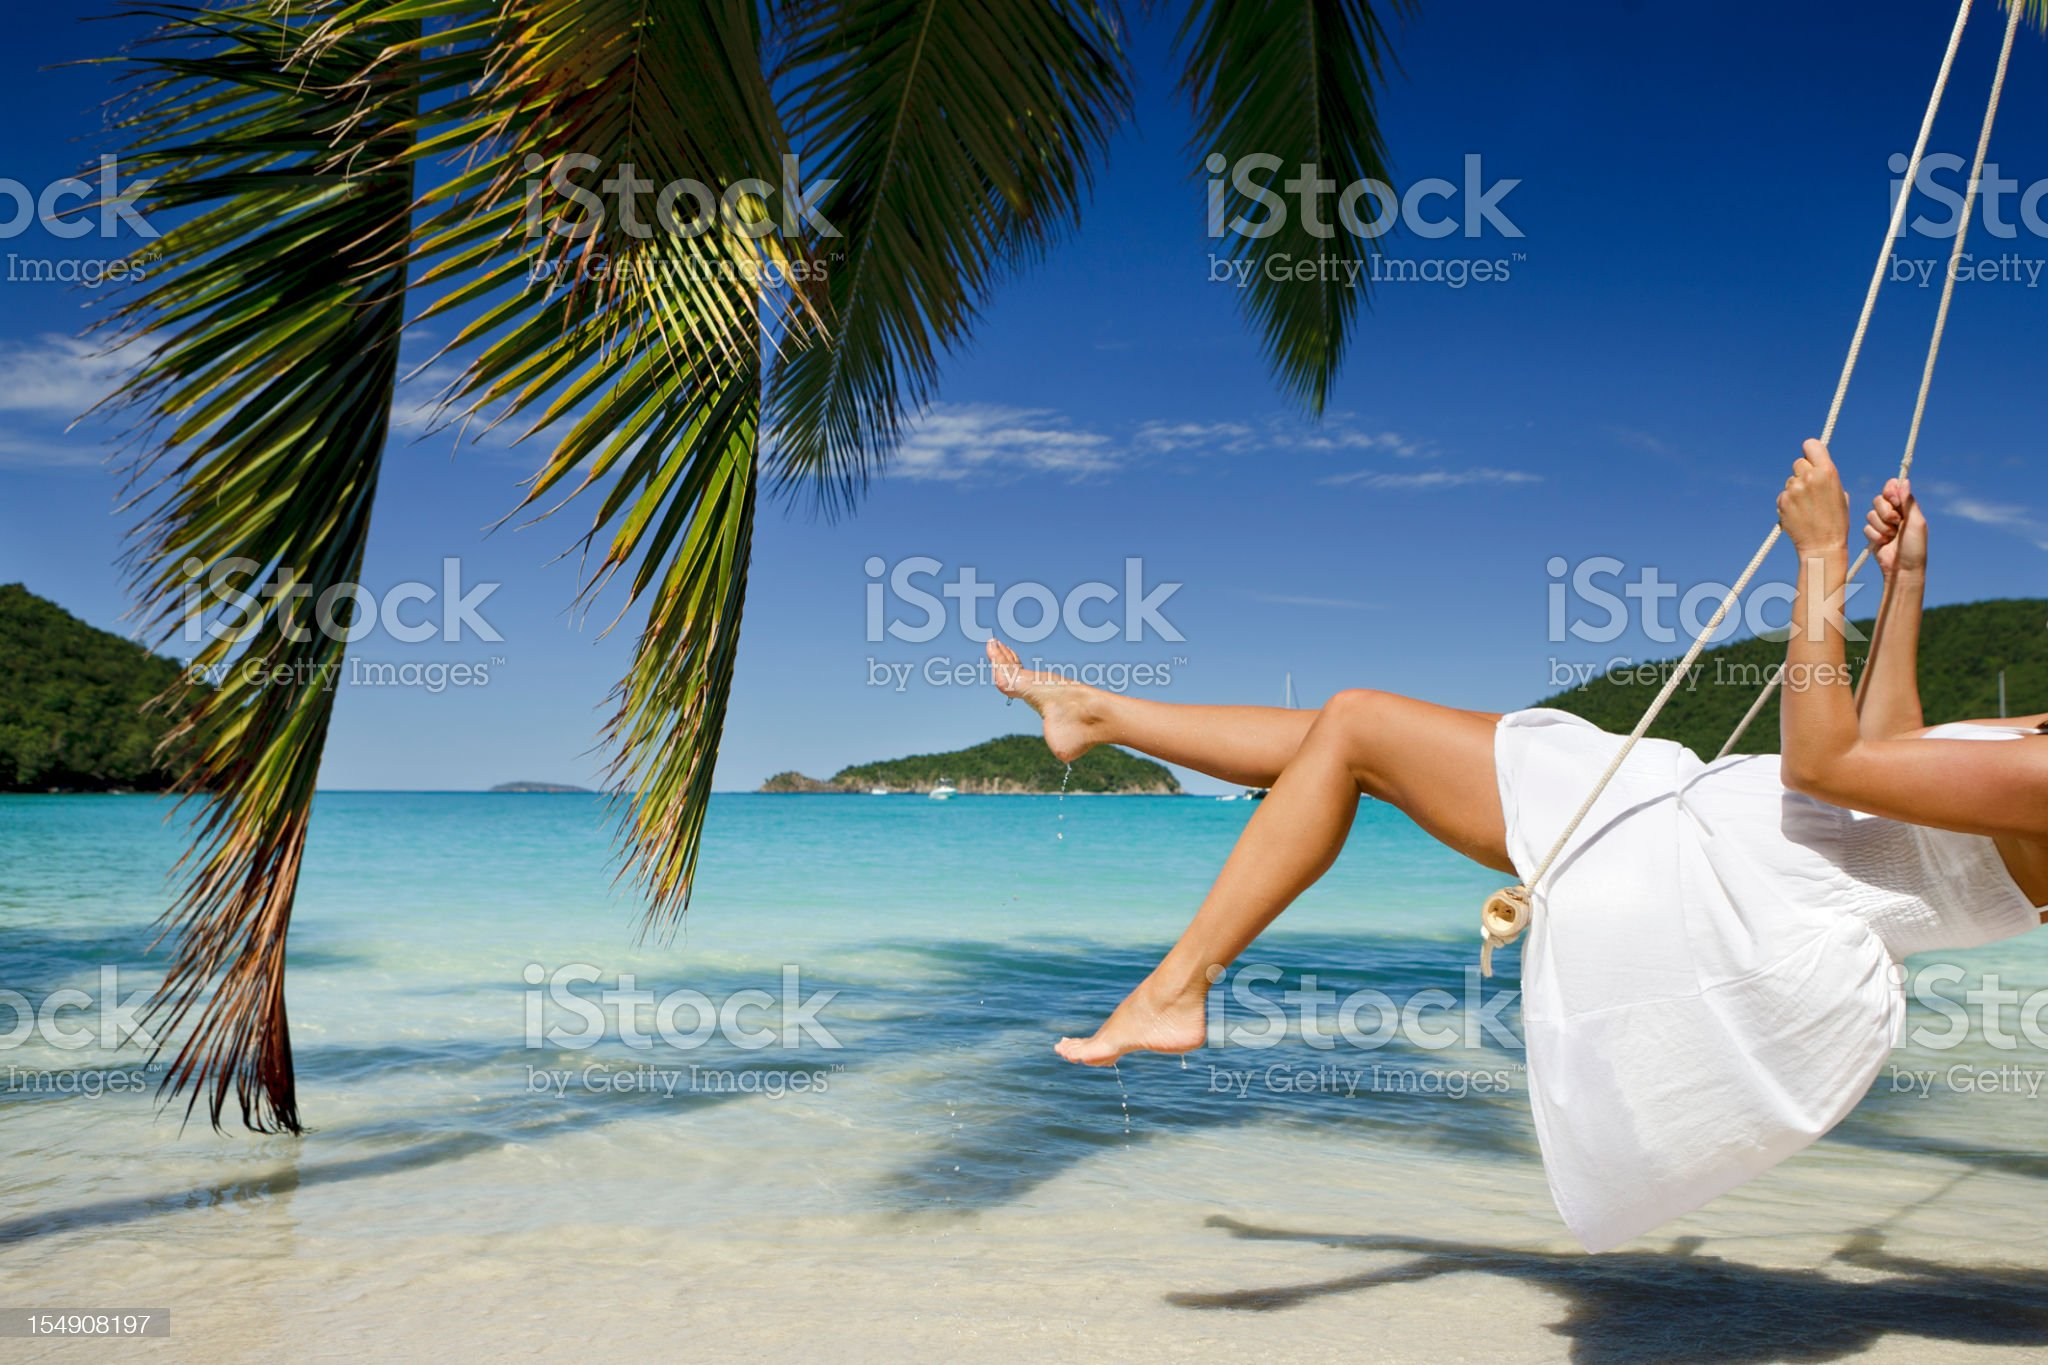 unrecognizable woman swinging at a beach in the Caribbean royalty-free stock photo